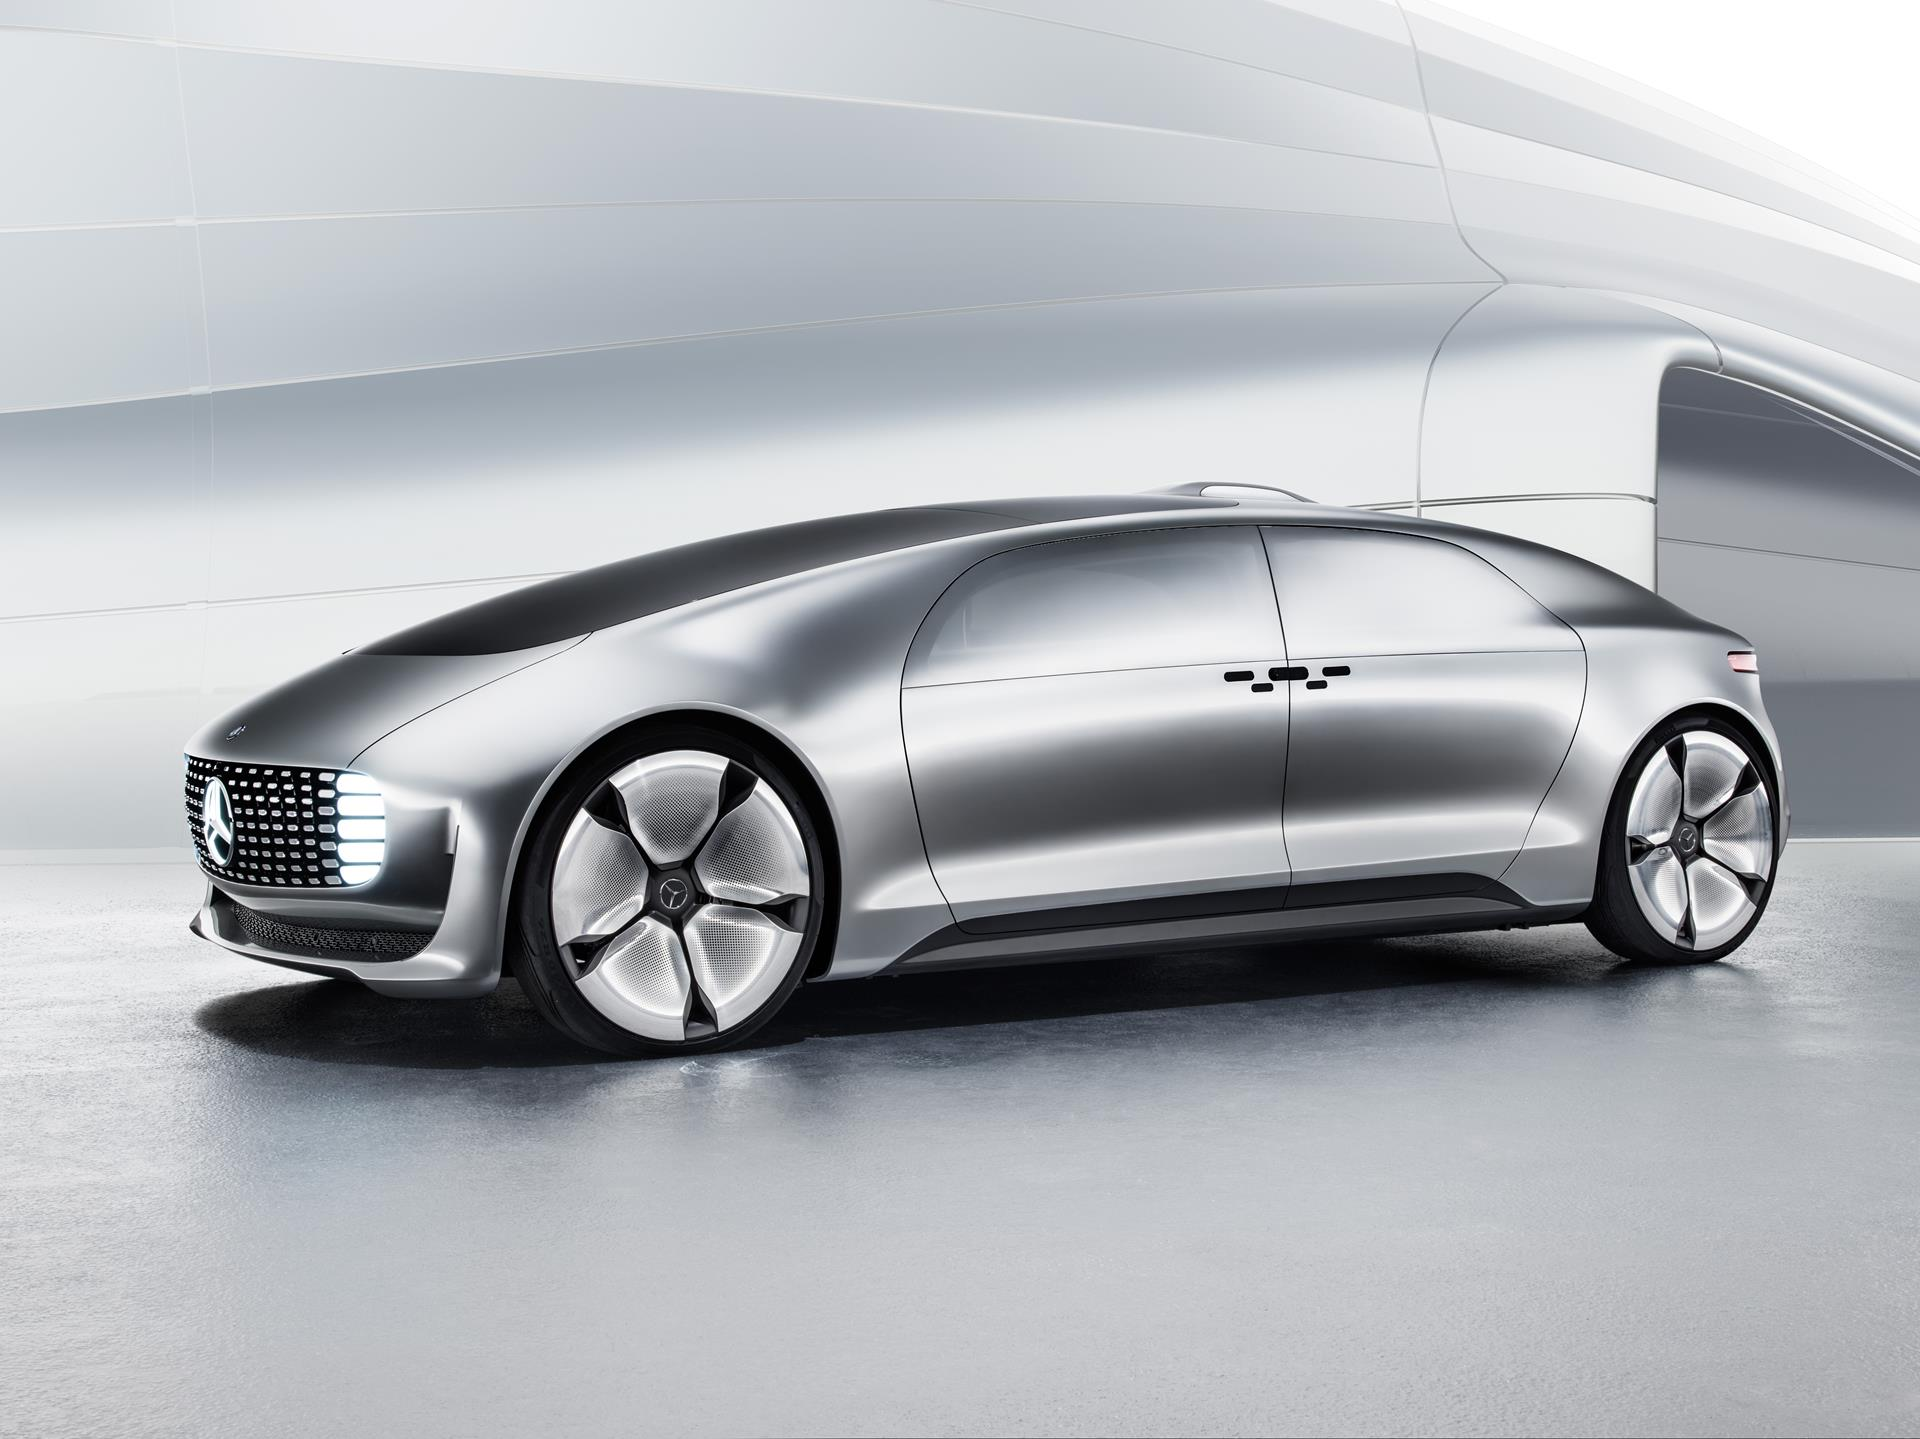 2015 mercedes benz f 015 luxury in motion concept for Mercedes benz cars images